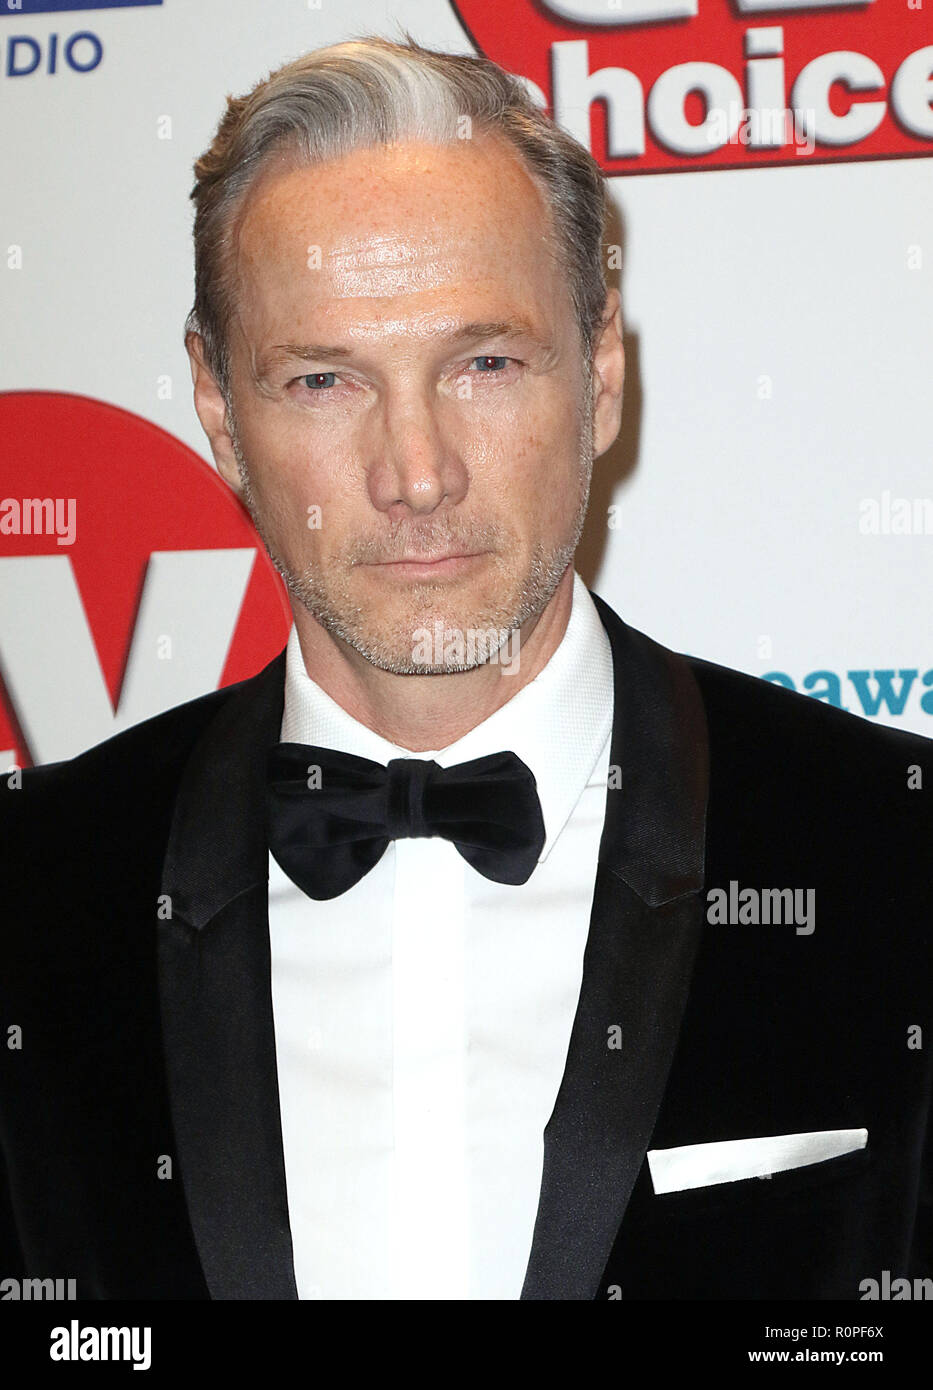 Sep 10, 2018  - attending 'TV Choice Awards 2018, Dorchester Hotel in London, UK - Stock Image